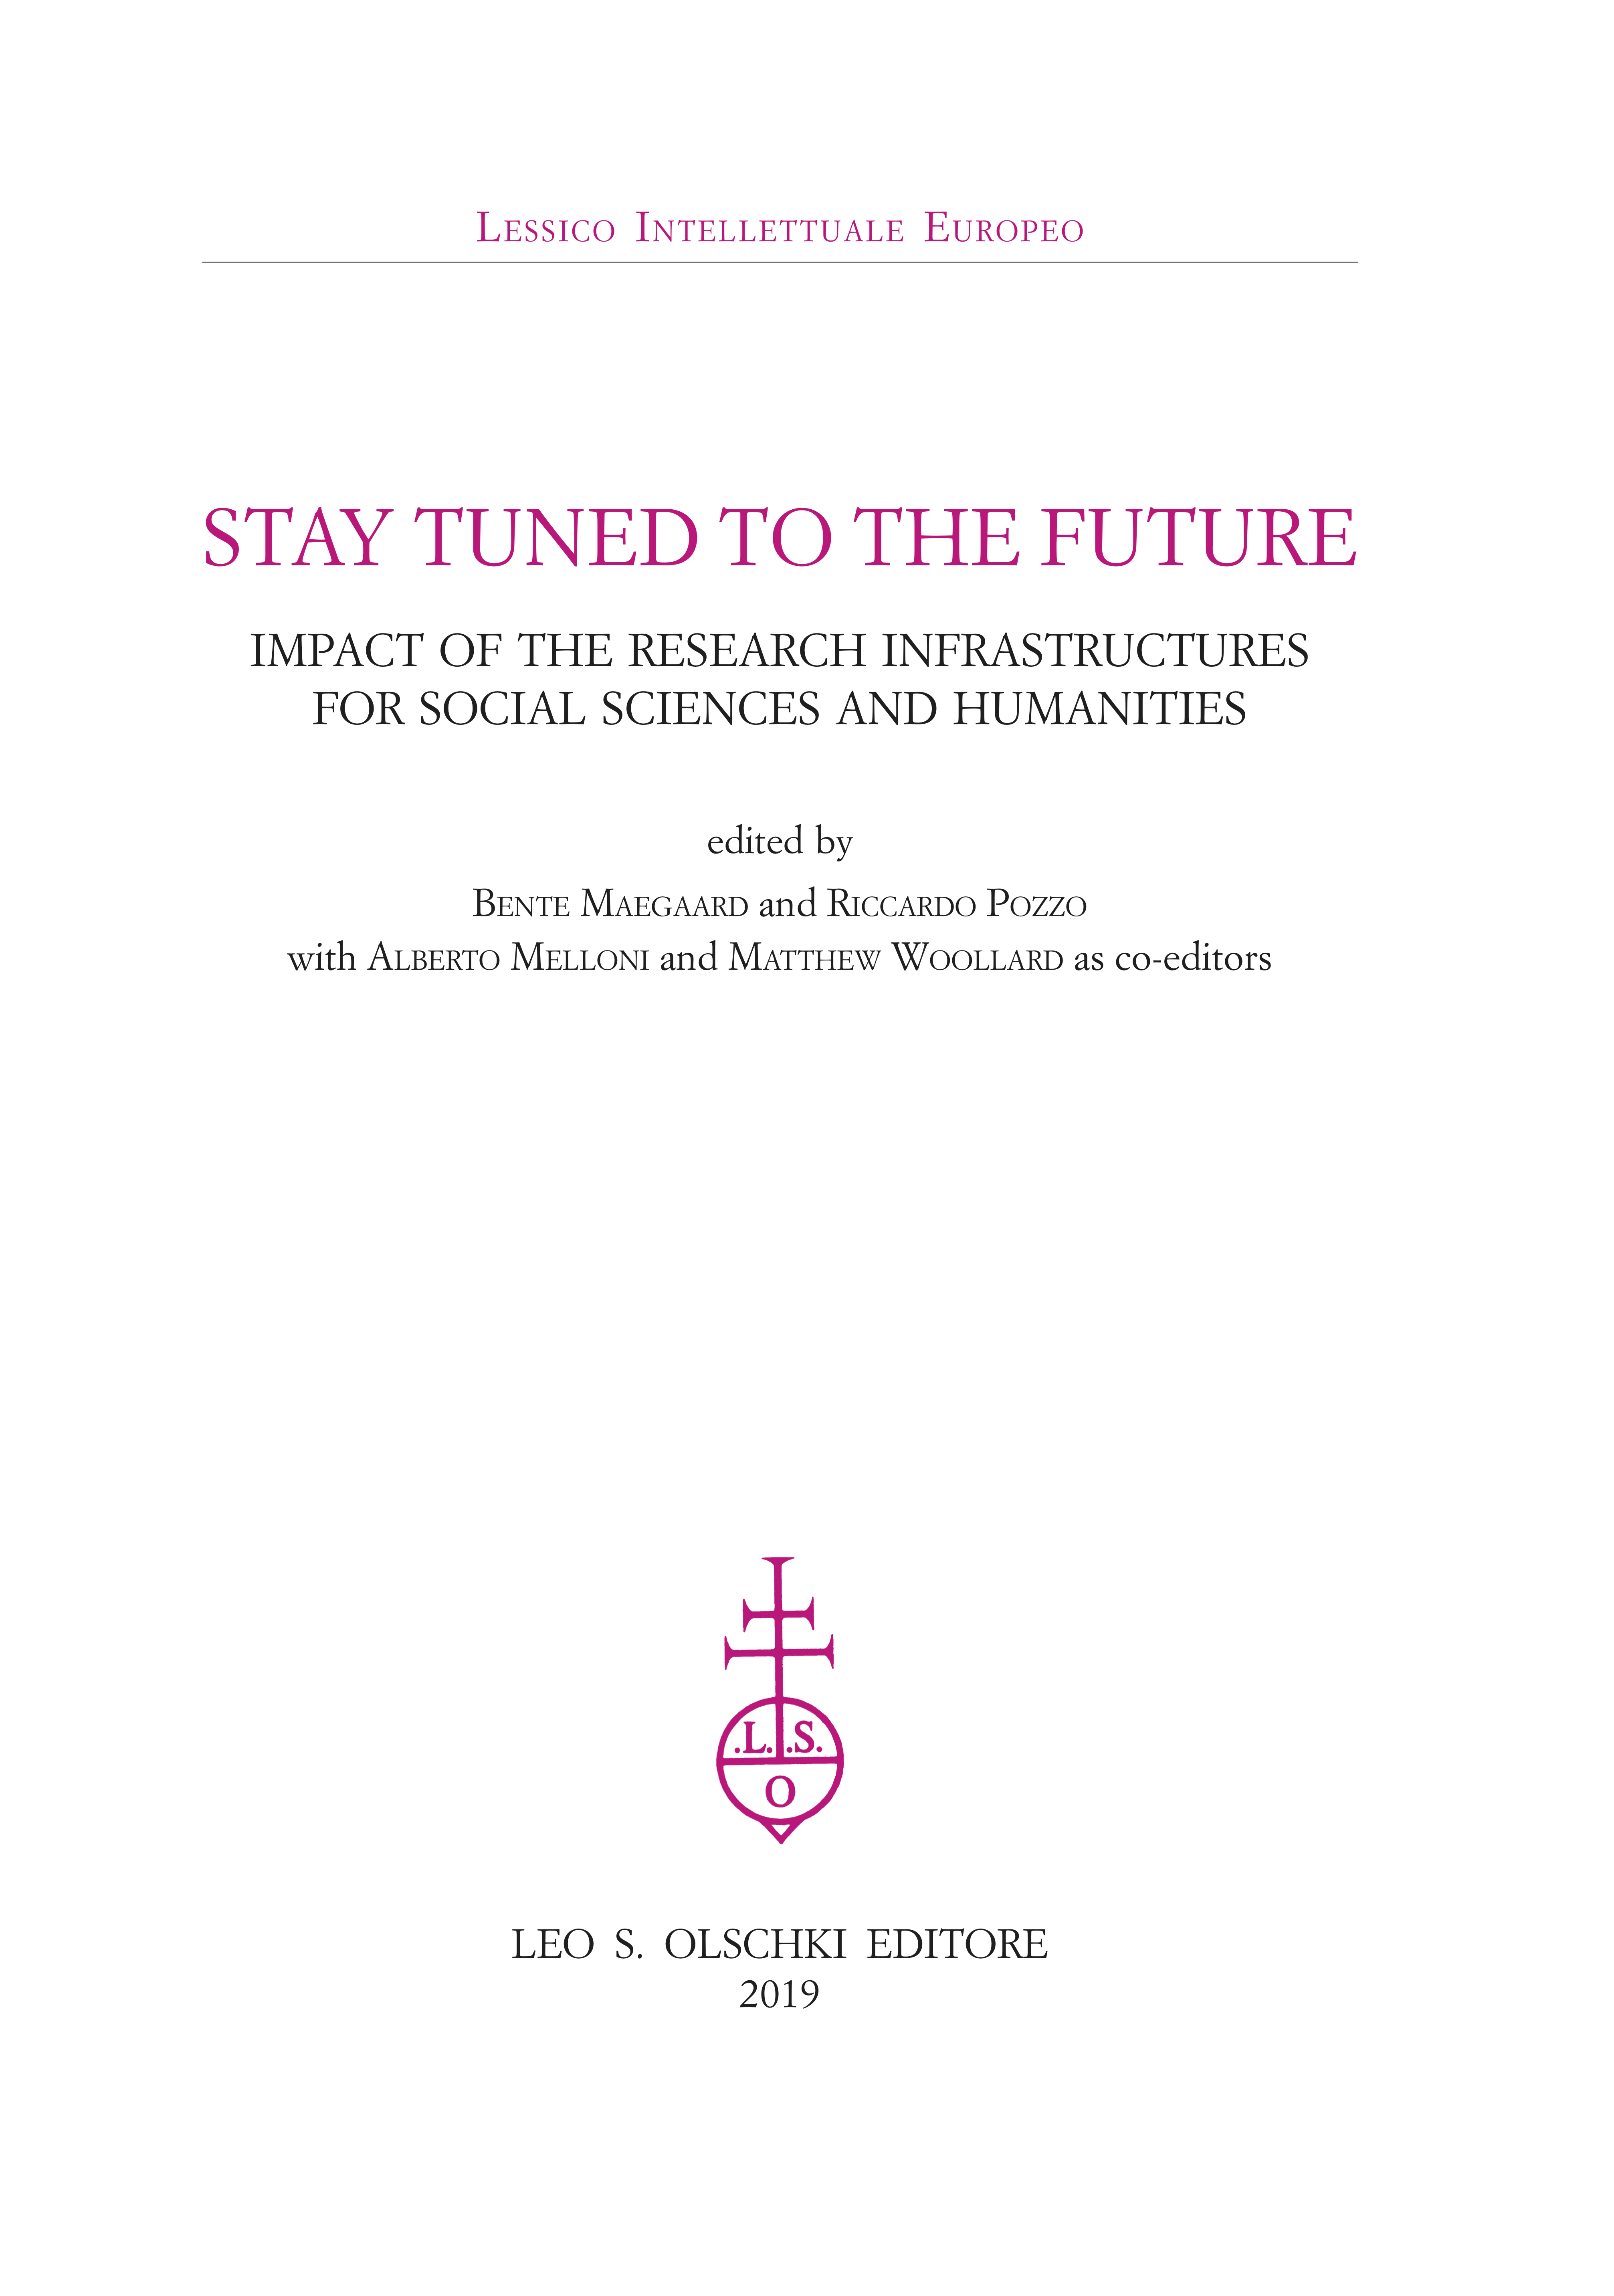 Book Launch: Stay Tuned to the Future